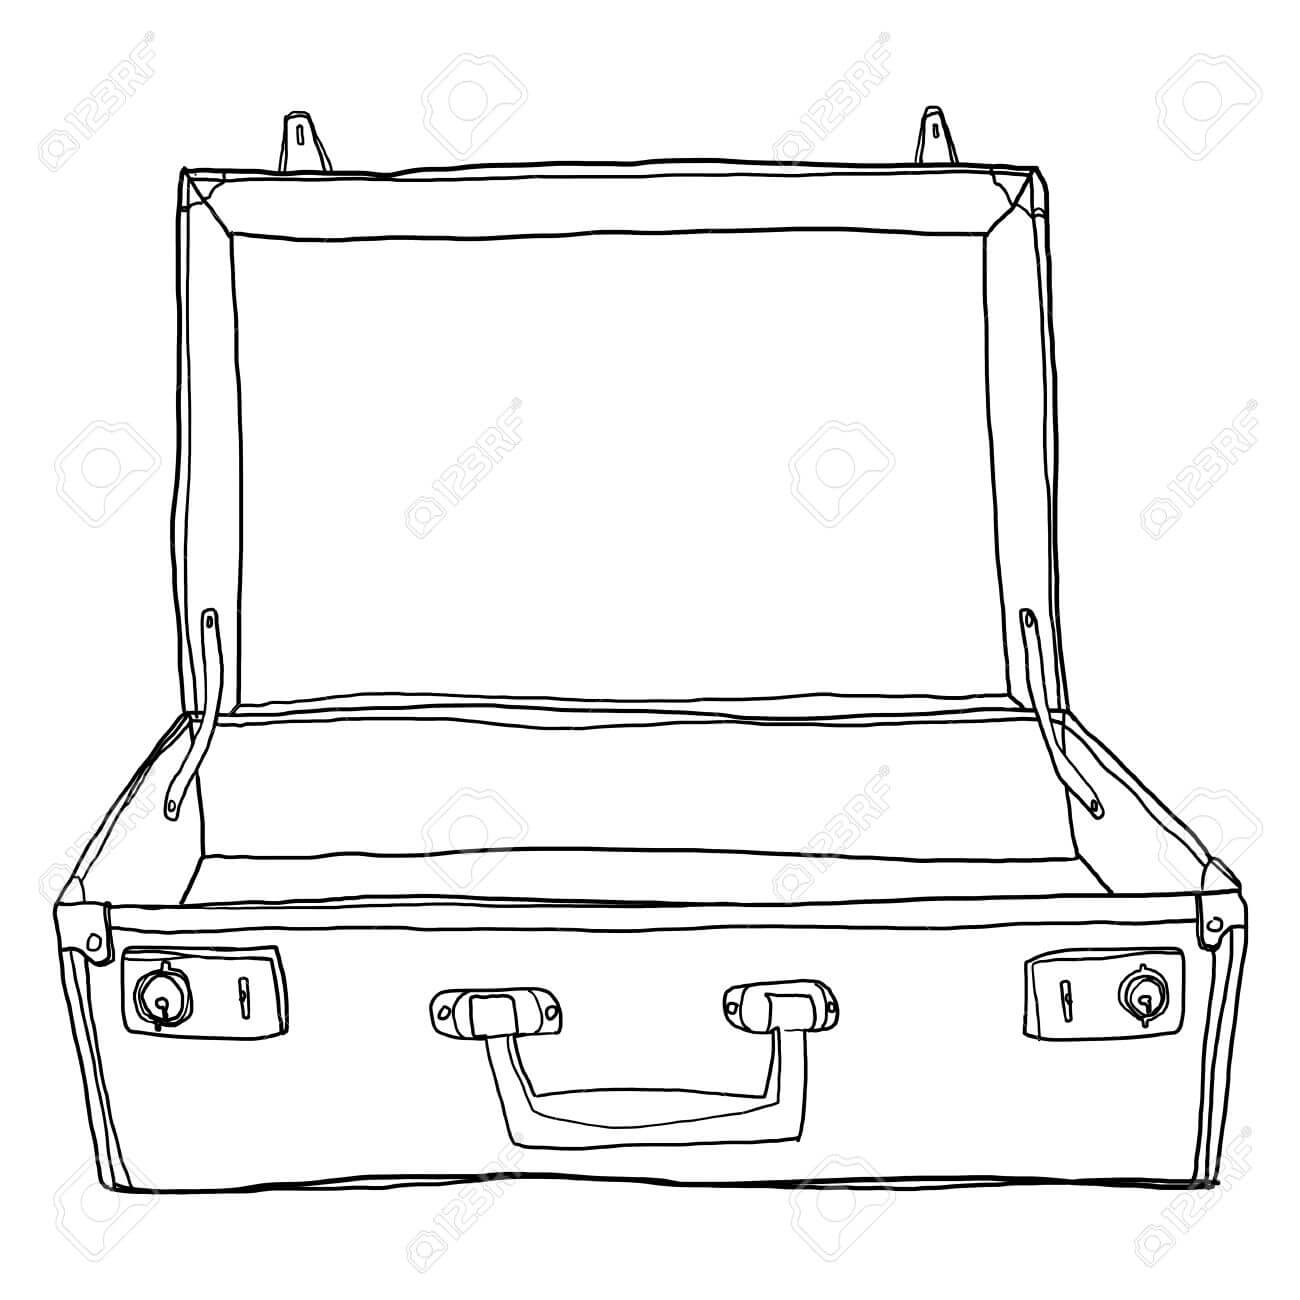 Stock Illustration With Blank Suitcase Template